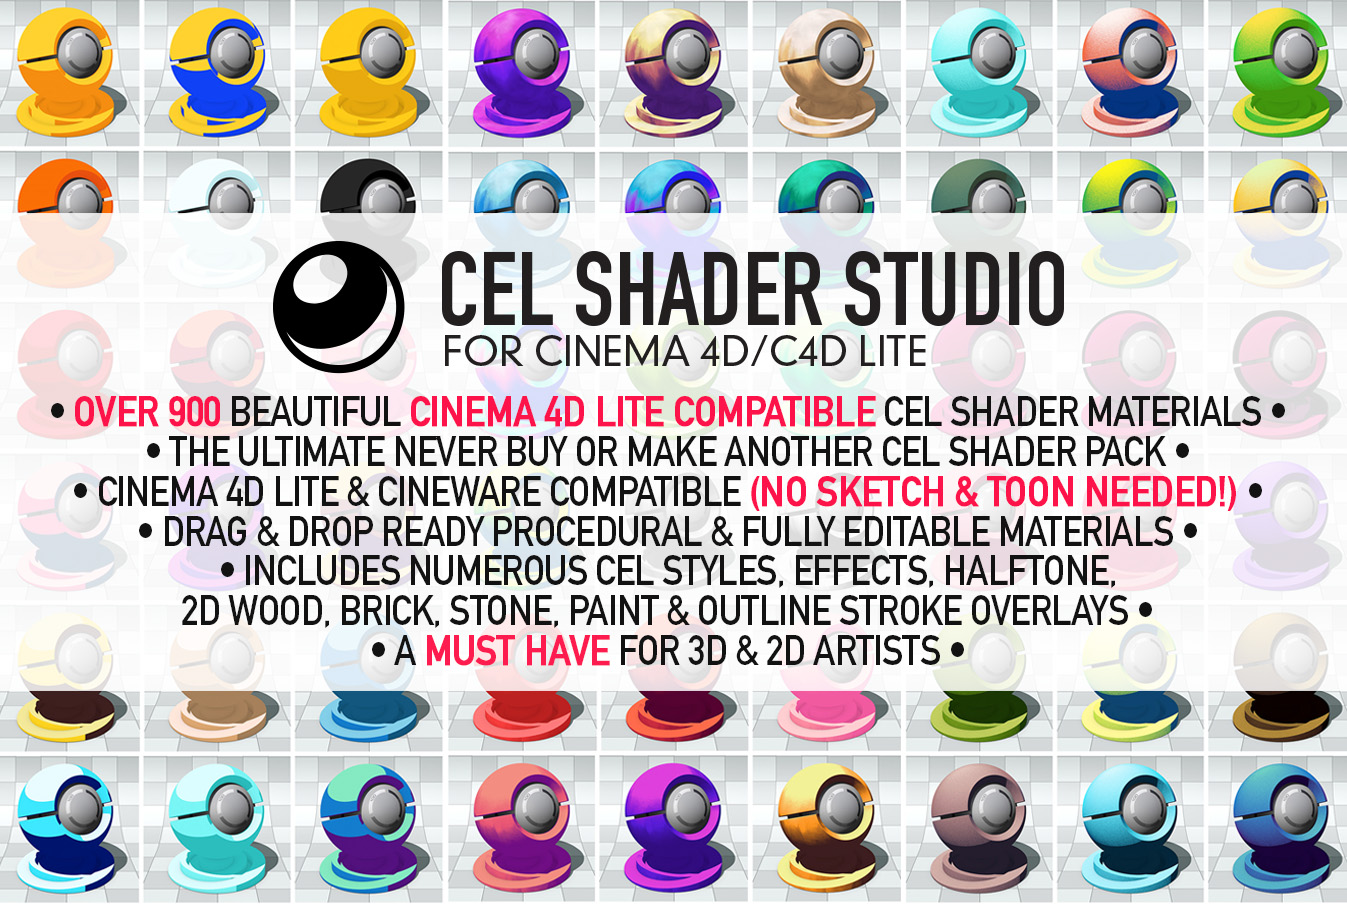 Cel Shader Studio for Cinema 4D | eyedesyn